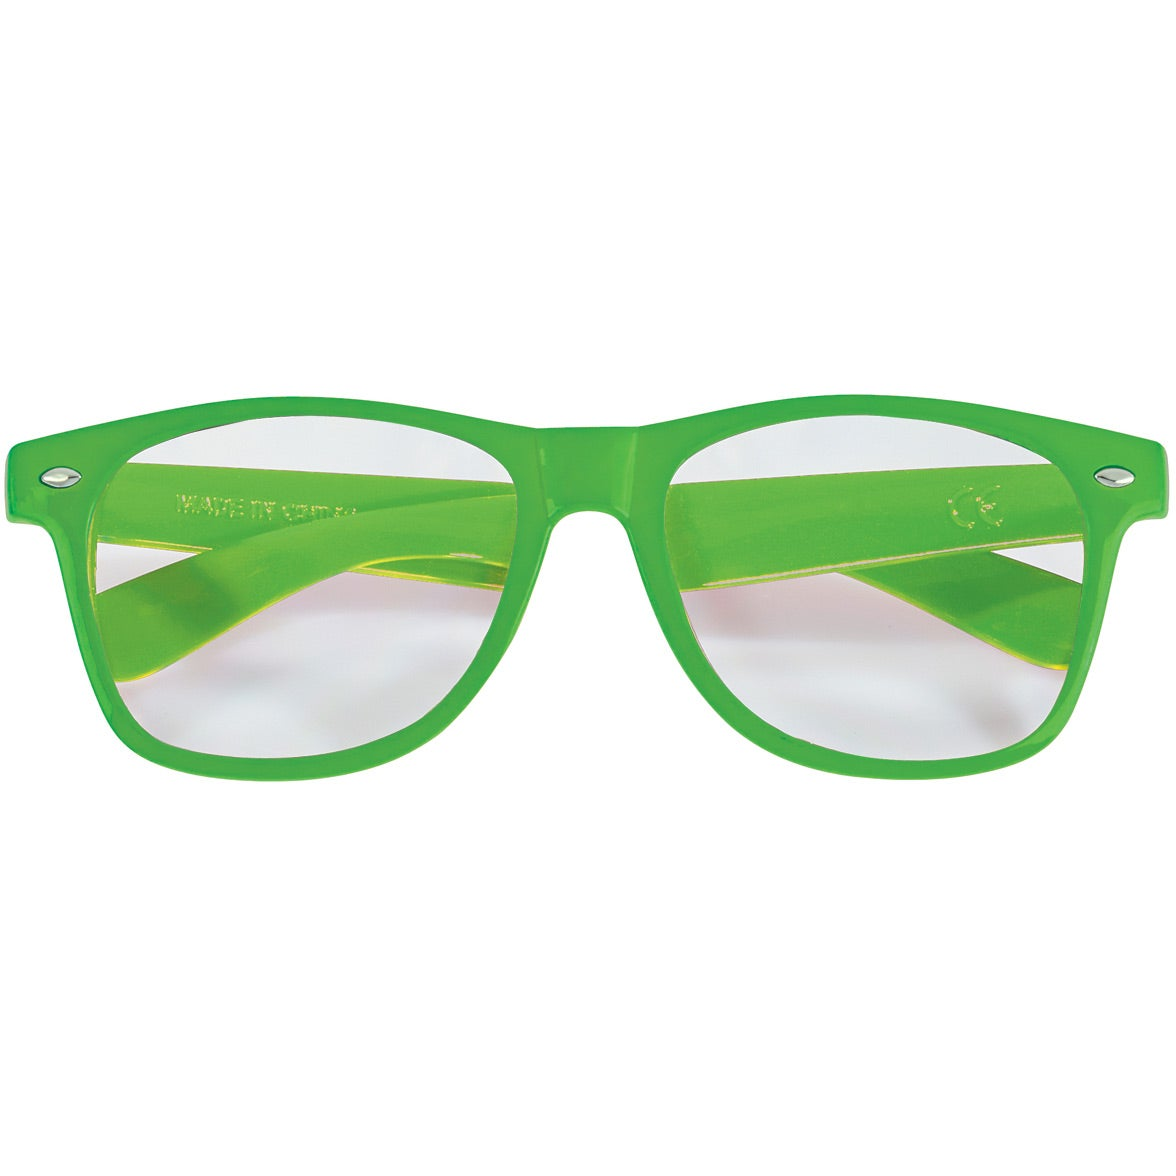 Glasses Frames That Change Color : Lens Glasses Custom Sunglasses 3.84 Ea.